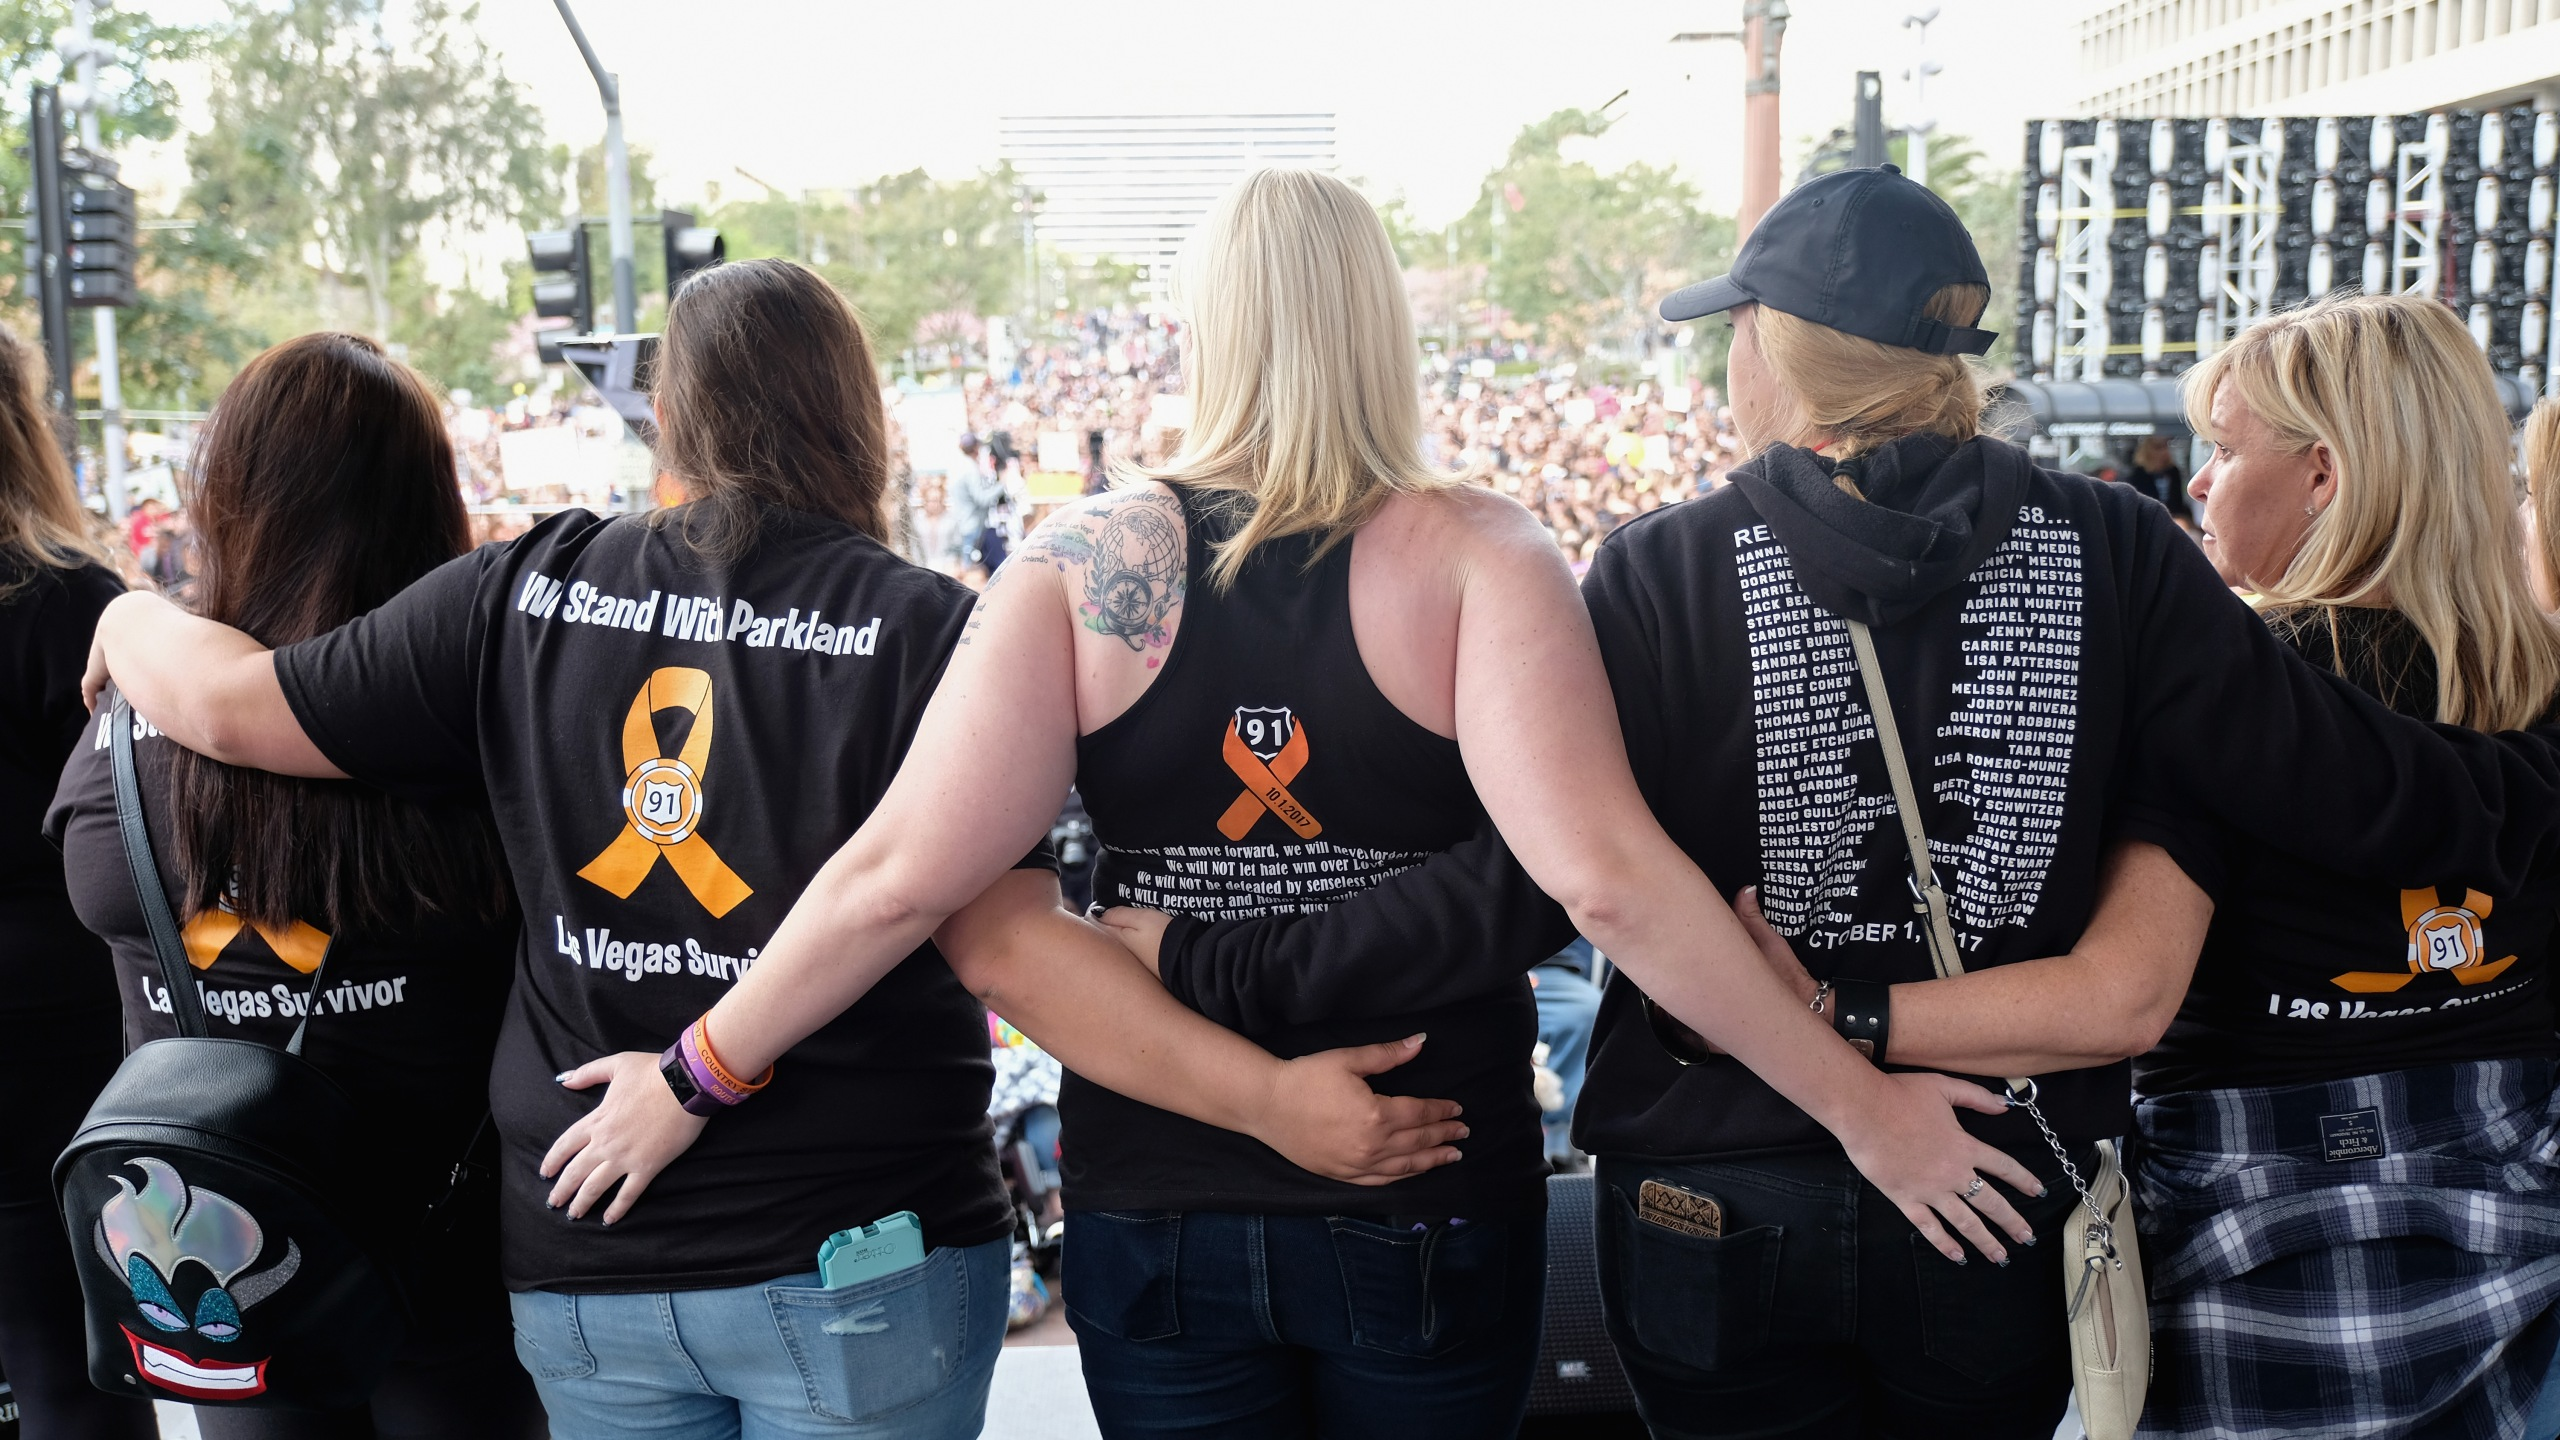 Survivors of the Route 91 Harvest music festival mass shooting in Las Vegas speak at the March for Our Lives Los Angeles rally on March 24, 2018 in Los Angeles, California. (Credit: Sarah Morris/Getty Images)